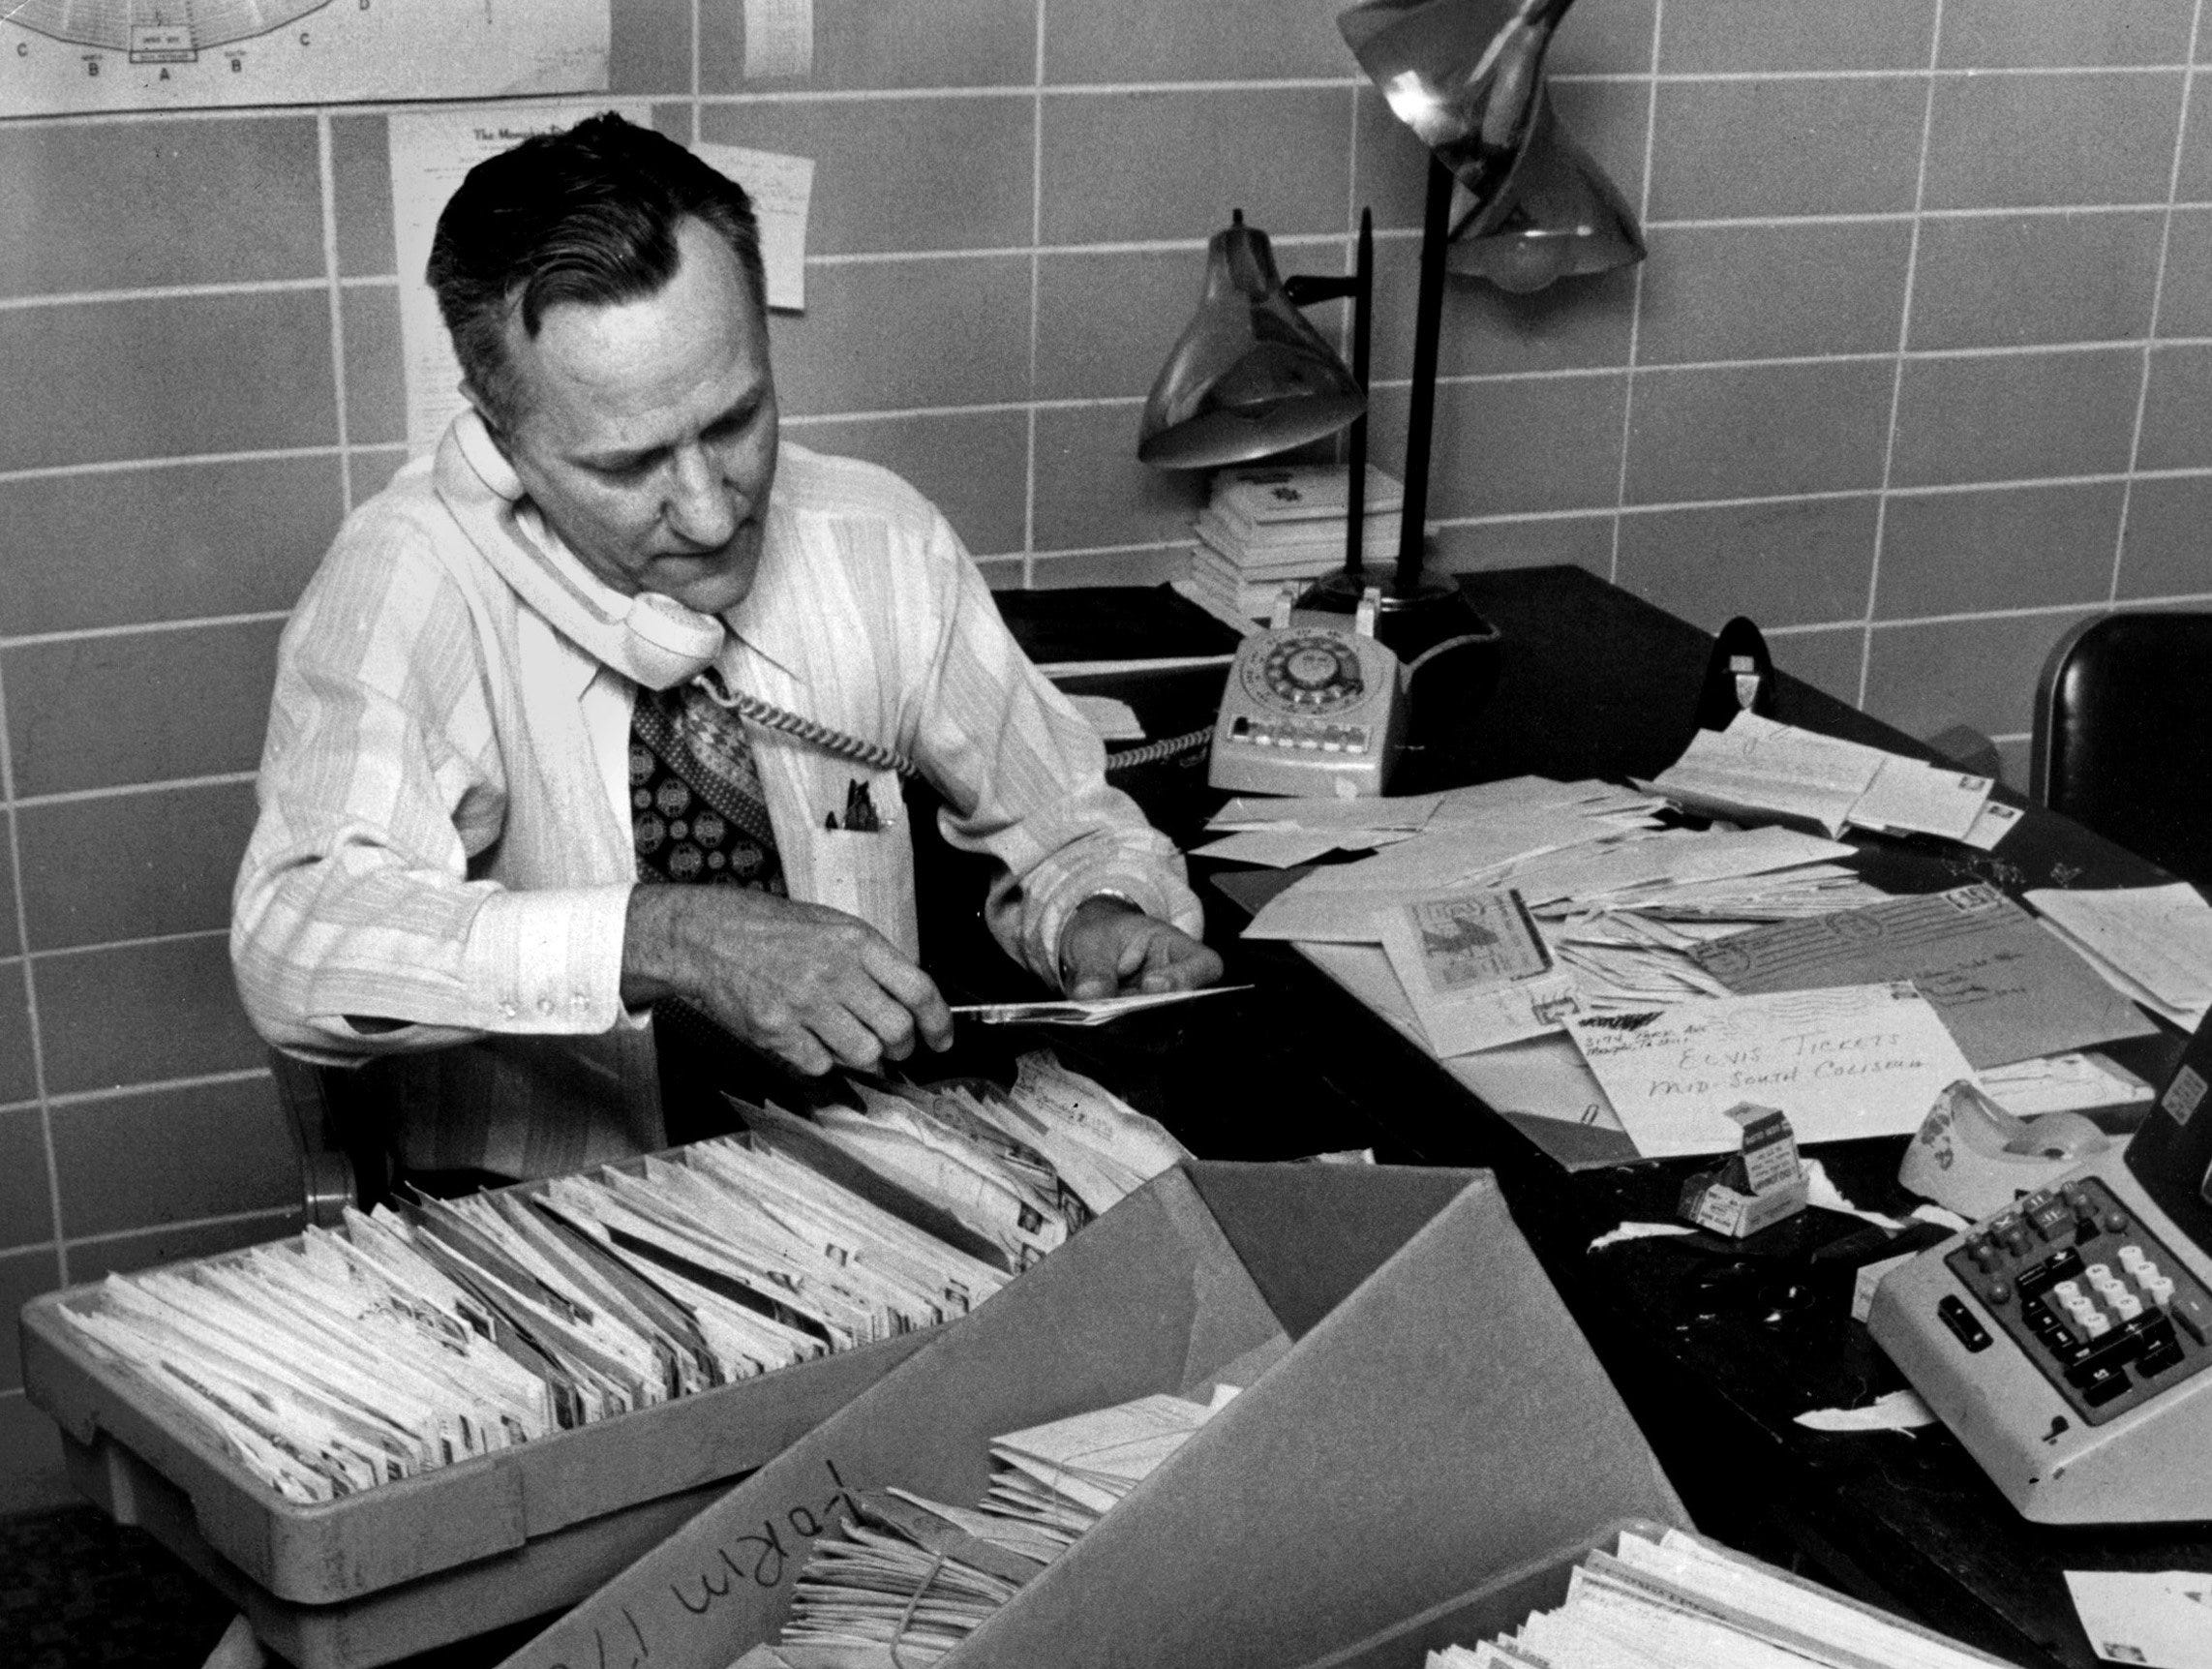 Mid-South Coliseum ticket office manager, Harry Brewer, sorts through mail order requests in Jan 1974 for tickets to three Elvis Presley concerts on March 16 and 17.  Coliseum manager E.E. Bland said that 4,000 requests were received during the day and that the concerts are expected to sell out in a hurry. Tickets cost $5 and $10.